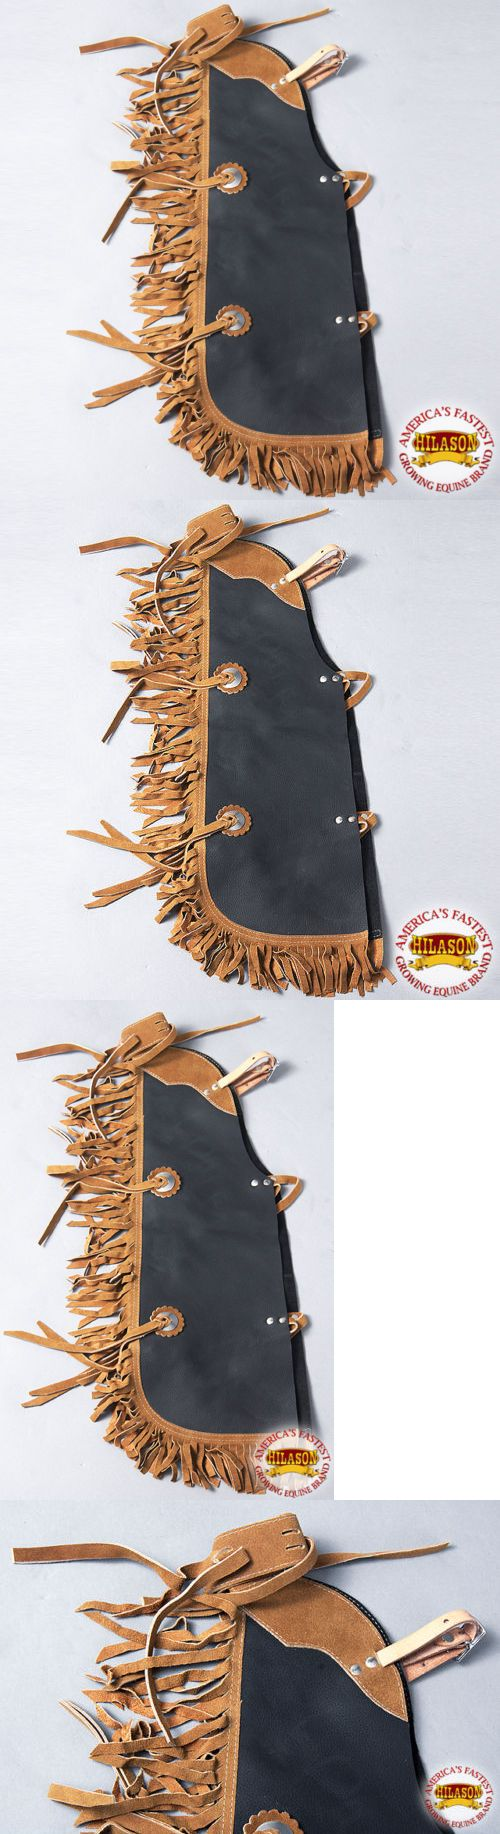 Western Chaps Full Chaps 183358: Cch904 Hilason Western Leather Kids Junior Youth Pro Rodeo Bull Riding Chaps -> BUY IT NOW ONLY: $69.99 on eBay!